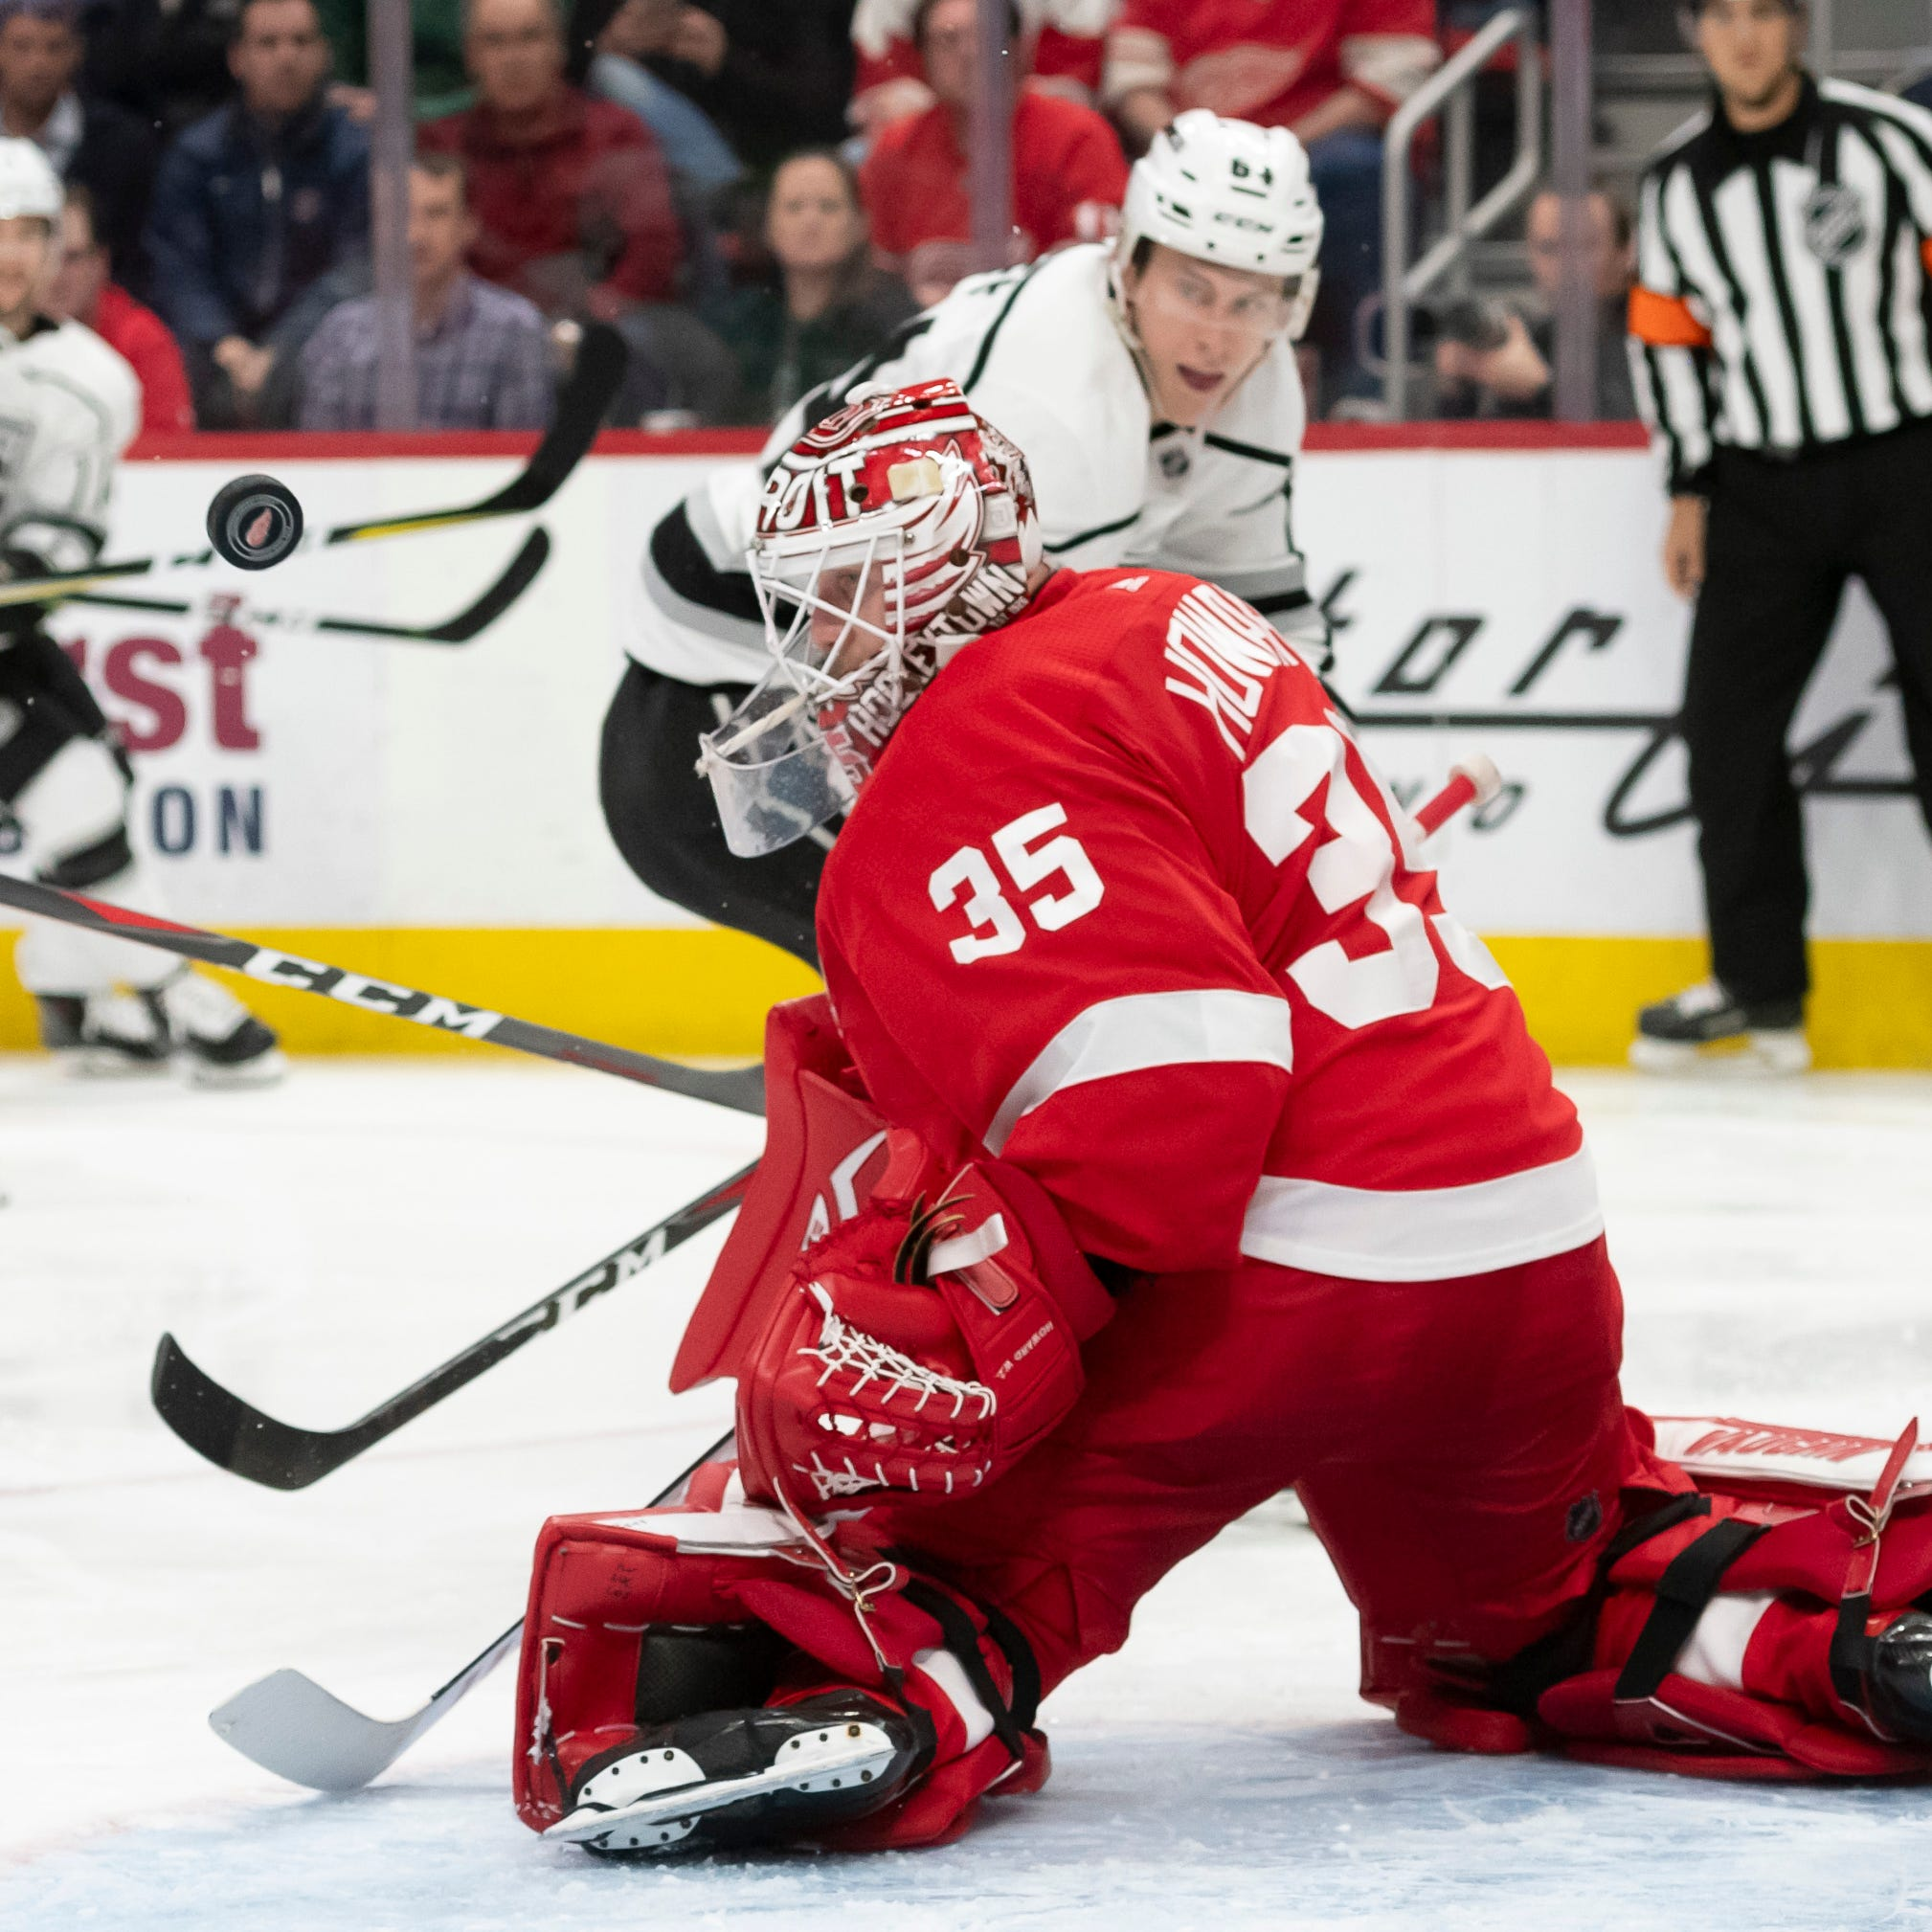 Howard's 'elite' goaltending makes Red Wings' trade-deadline decisions that much tougher